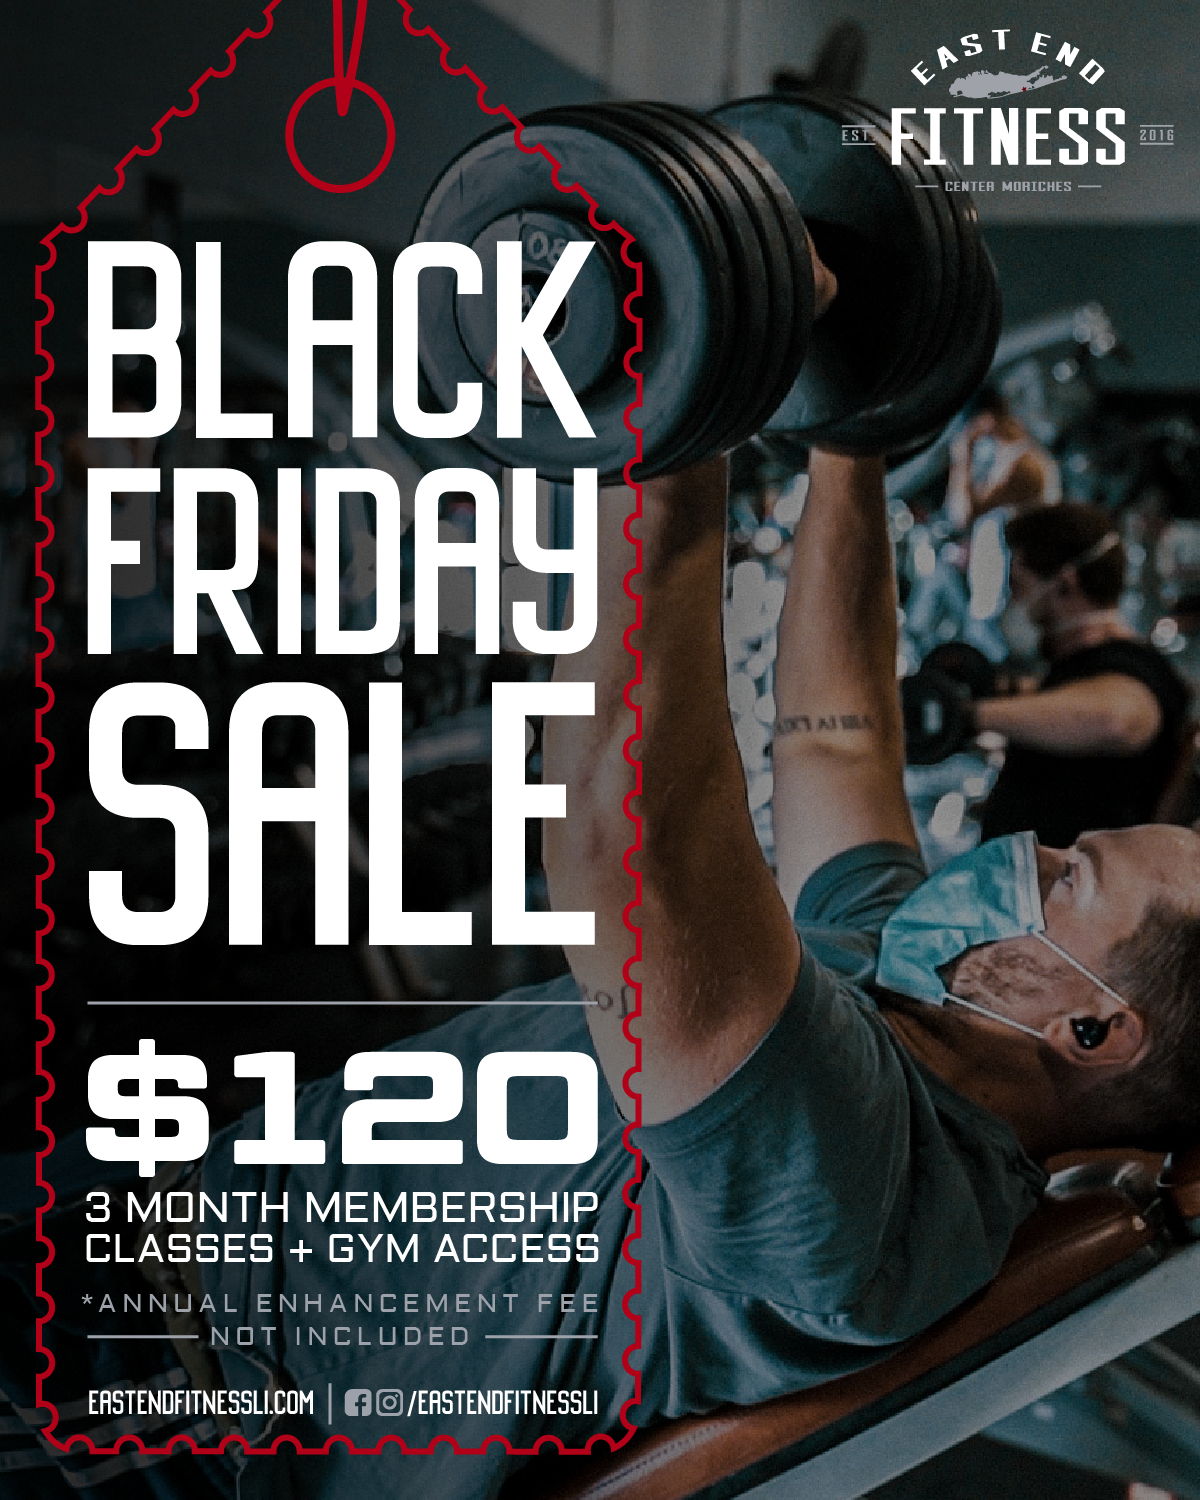 Flyer for Black Friday Sale, $120 for a 3 month membership classes and gym access